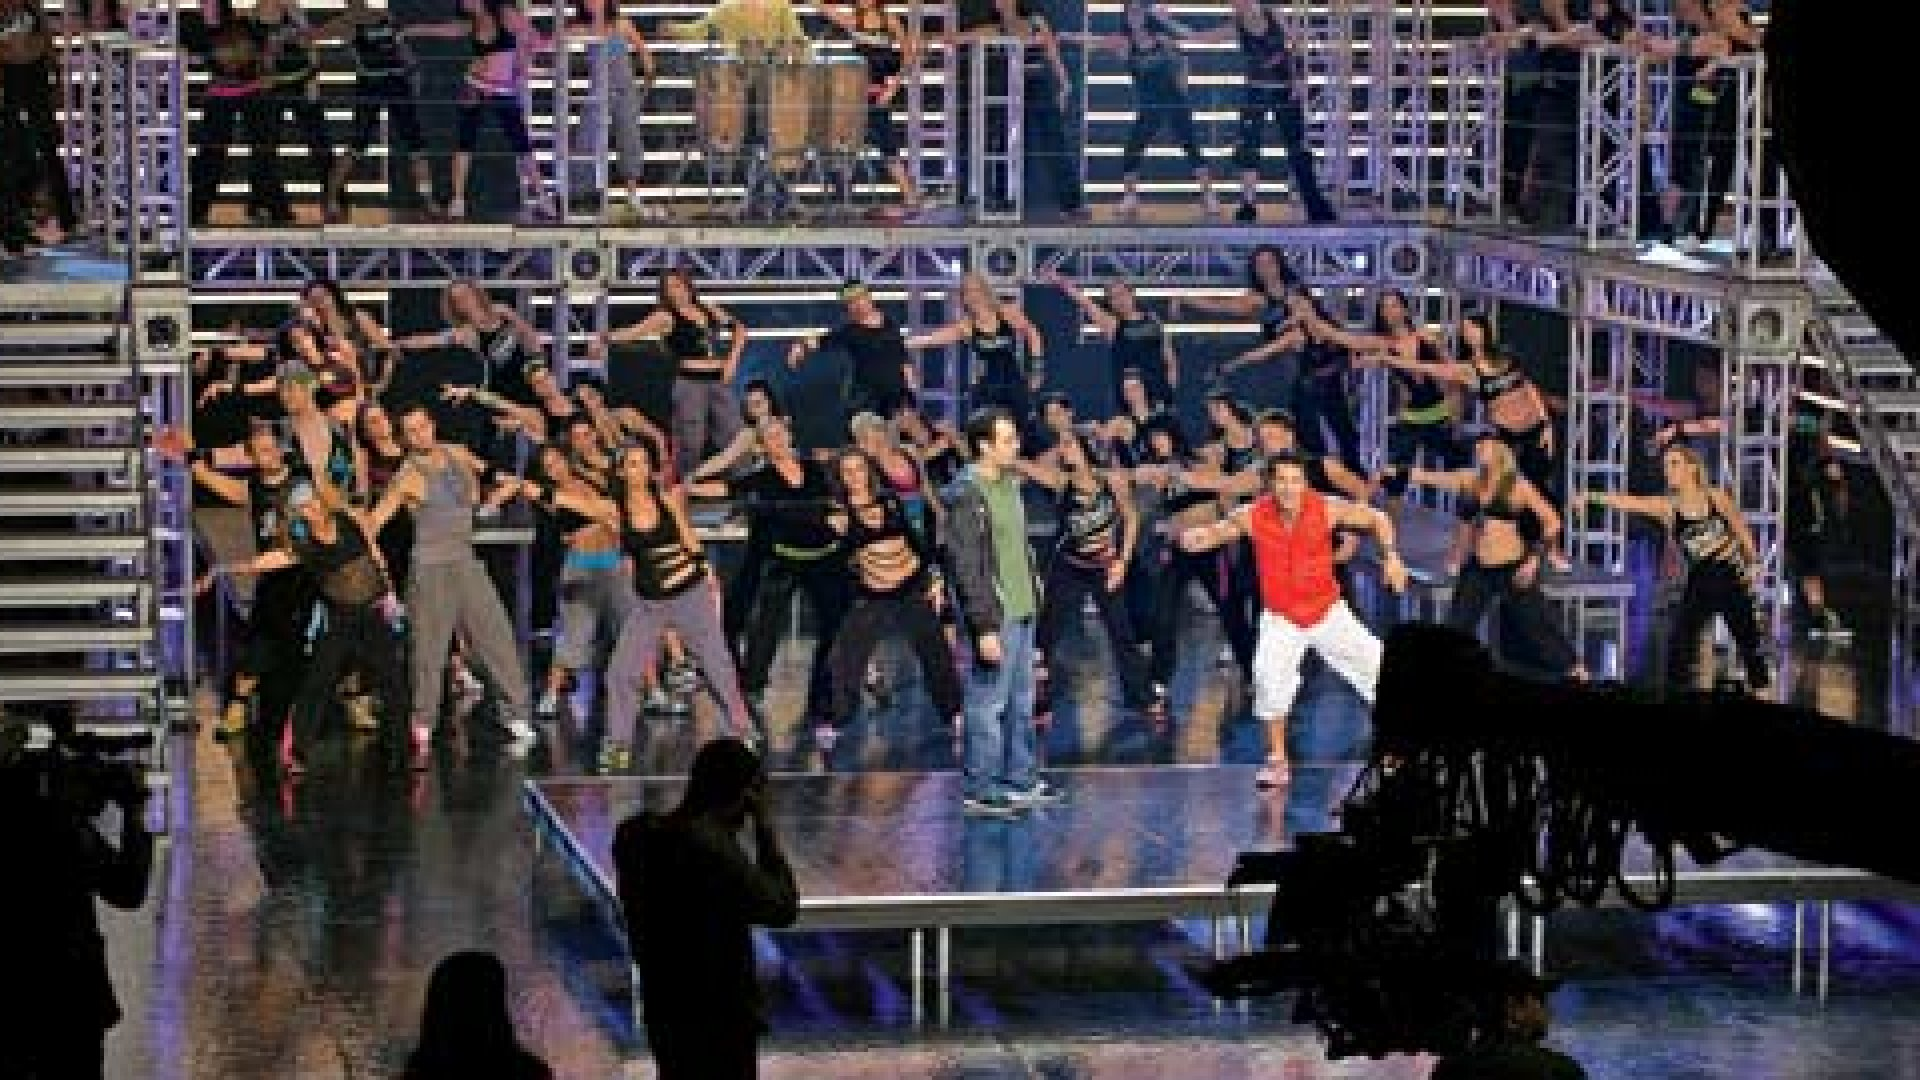 """Alberto (""""Beto"""") Perez, in red, leads a Zumba video shoot. Onstage with him is Alberto Perlman."""